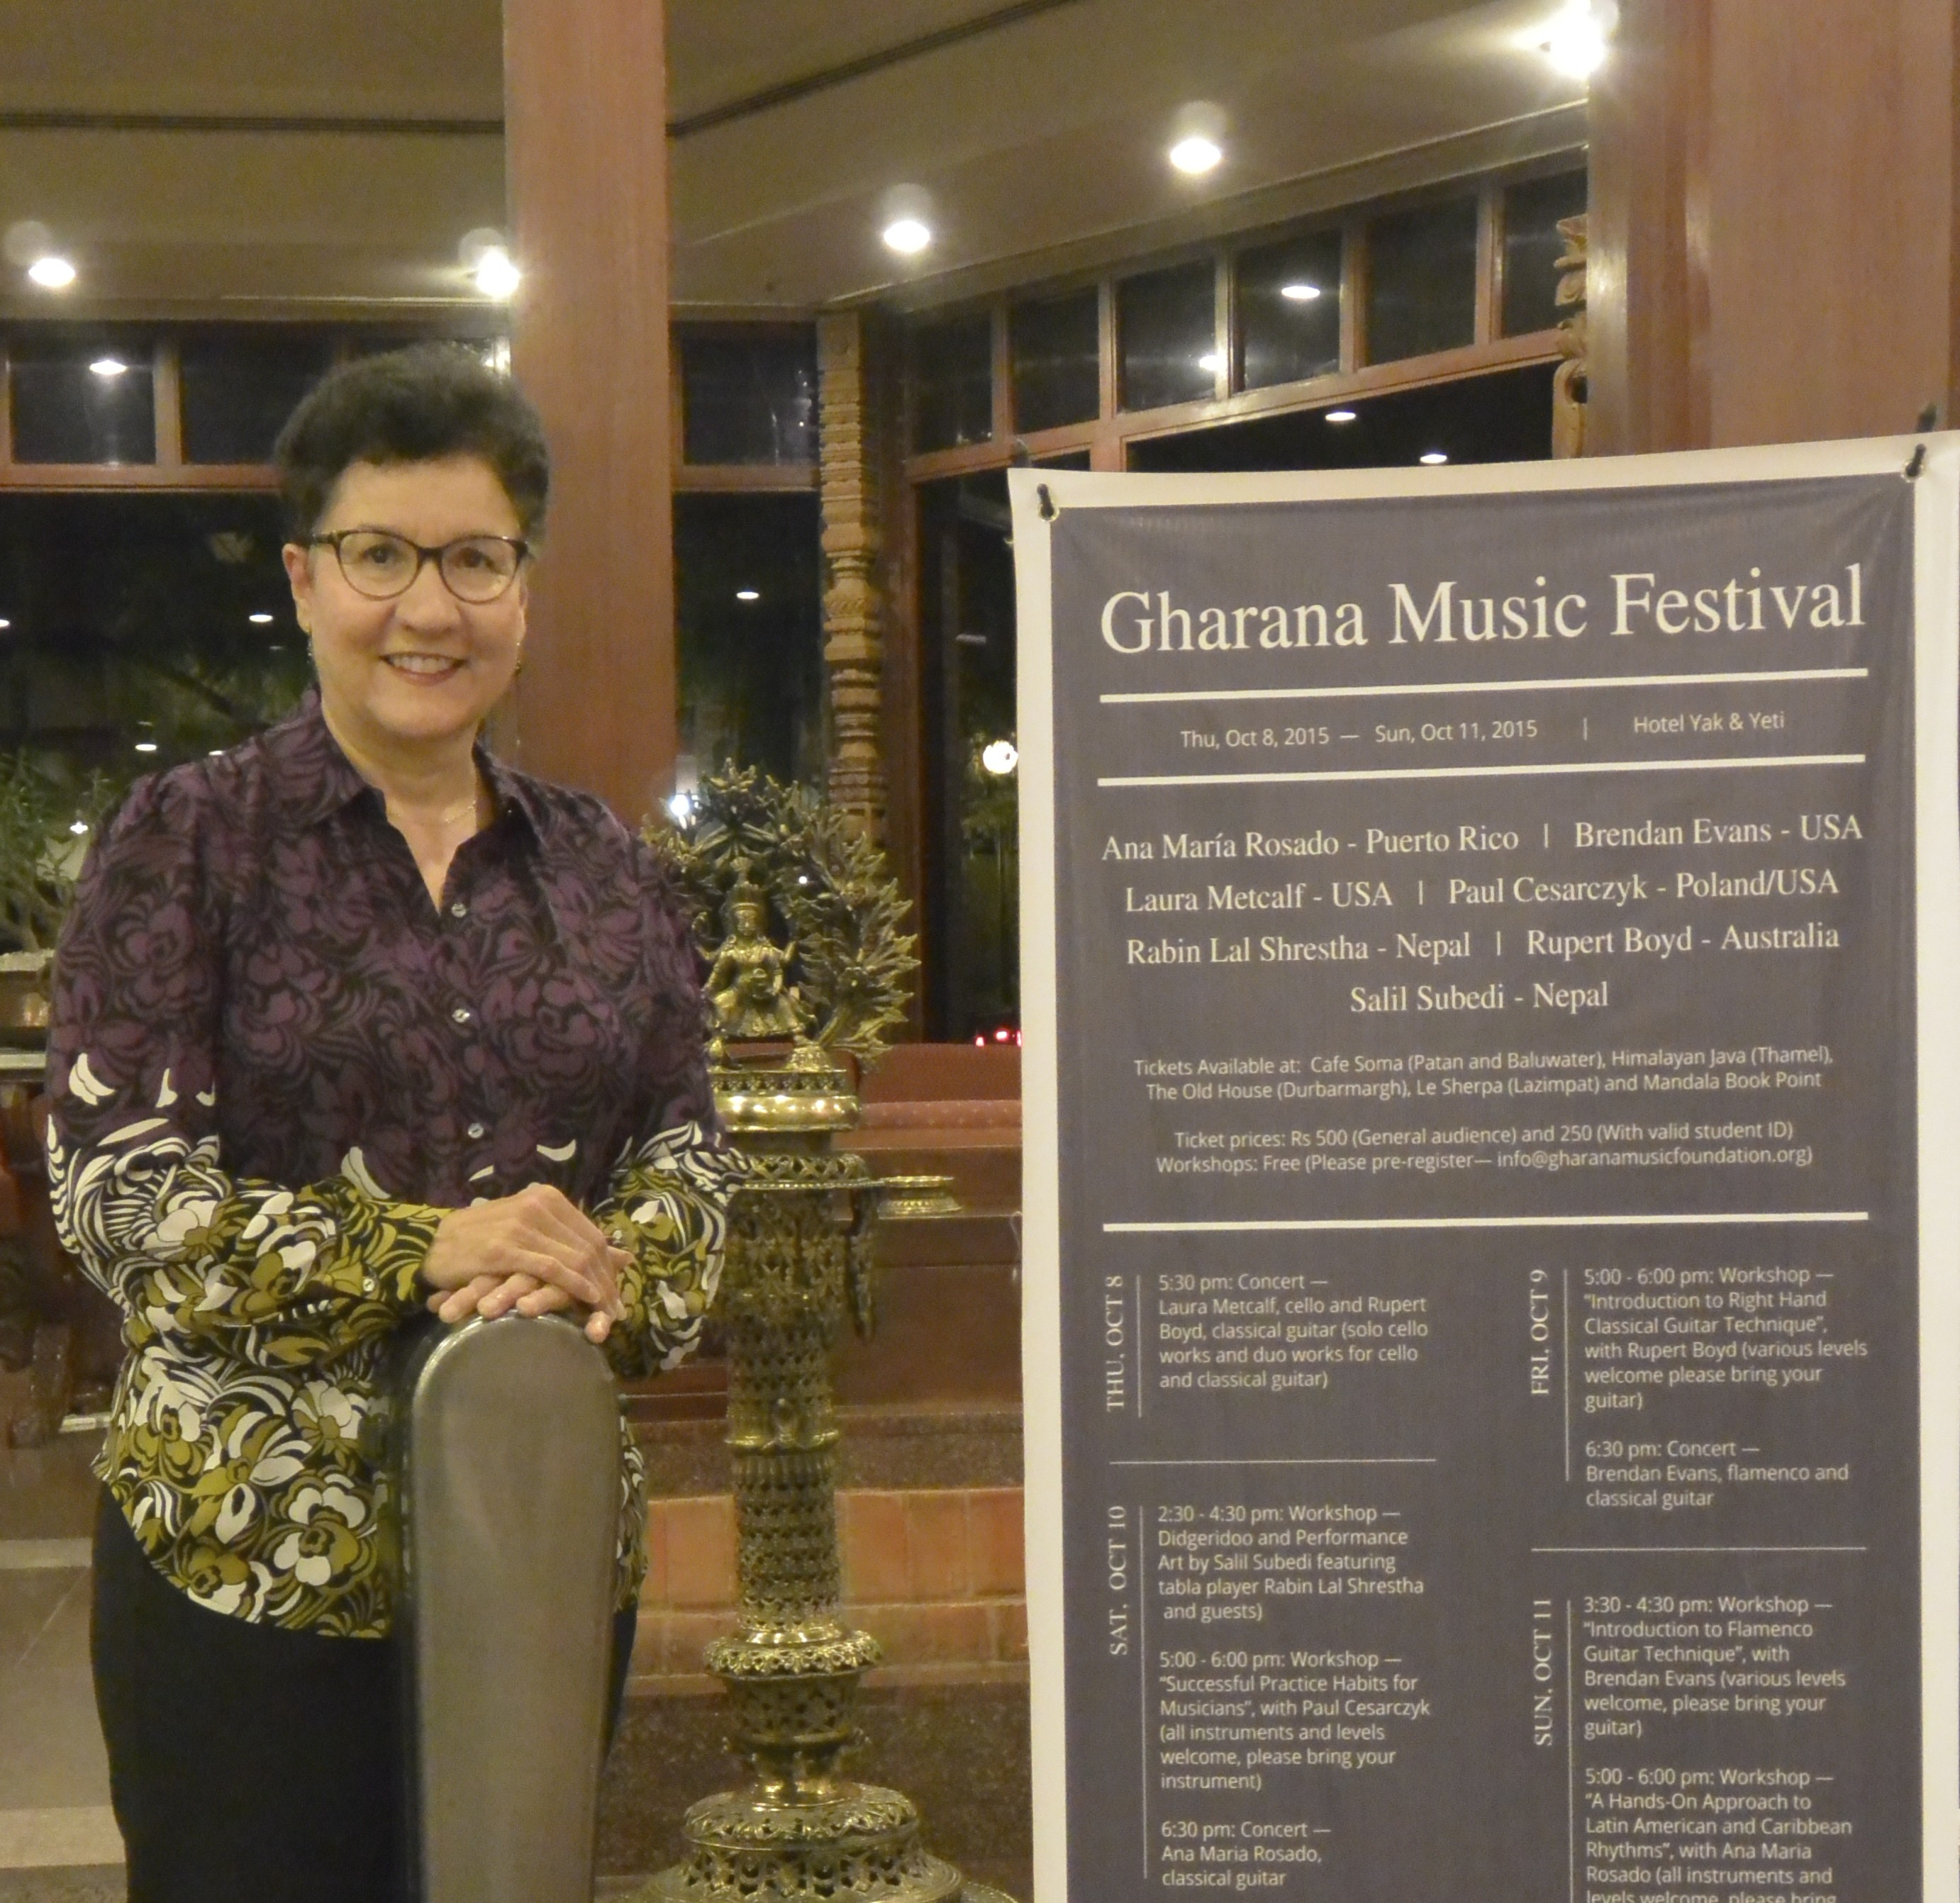 AMR At Hotel Yak And Yeti In Kathmandu On The Eve Of Her Recital For The Gharana Music Festival, In Nepal.